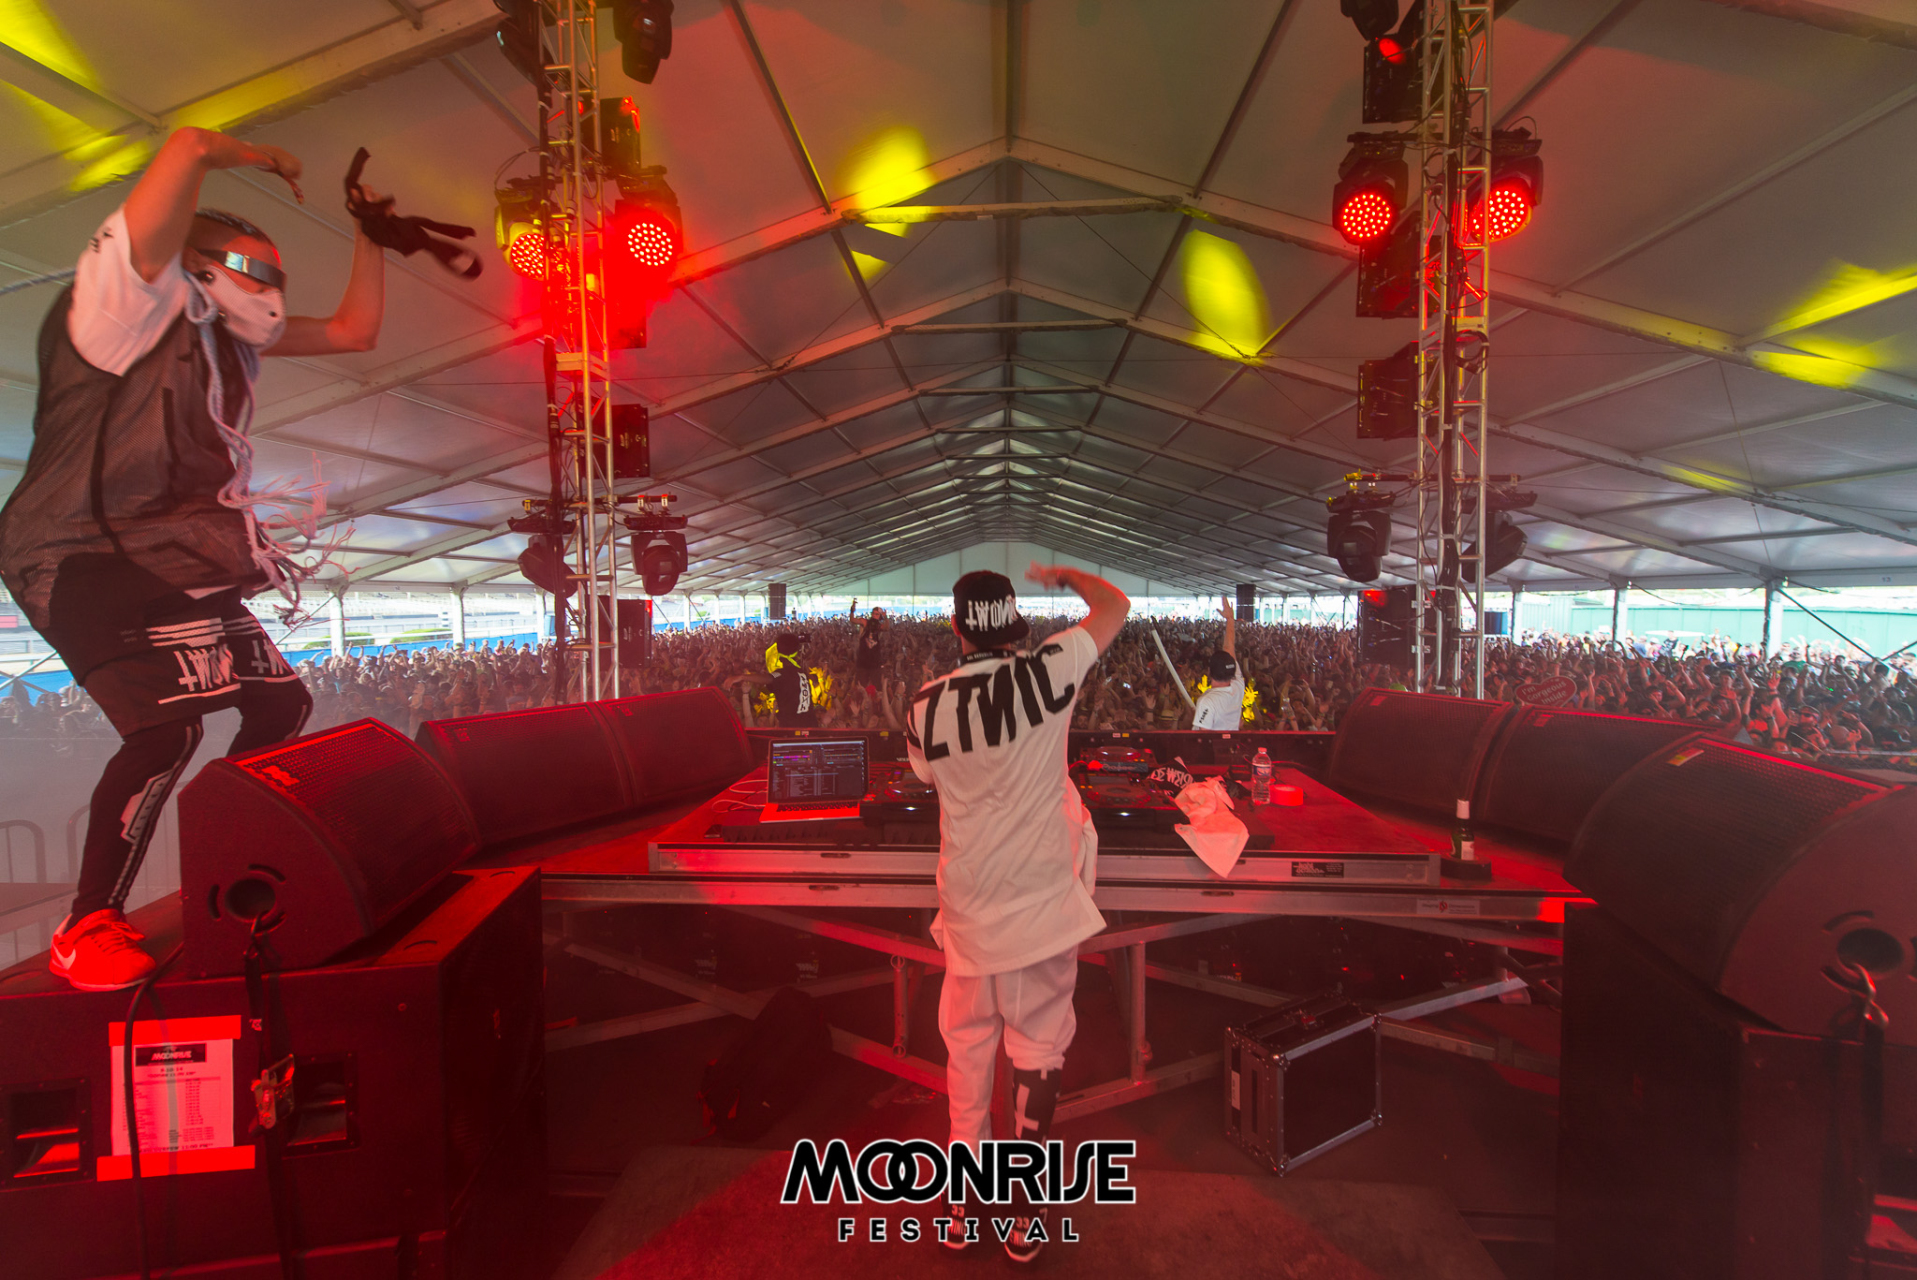 Moonrise_day2-72